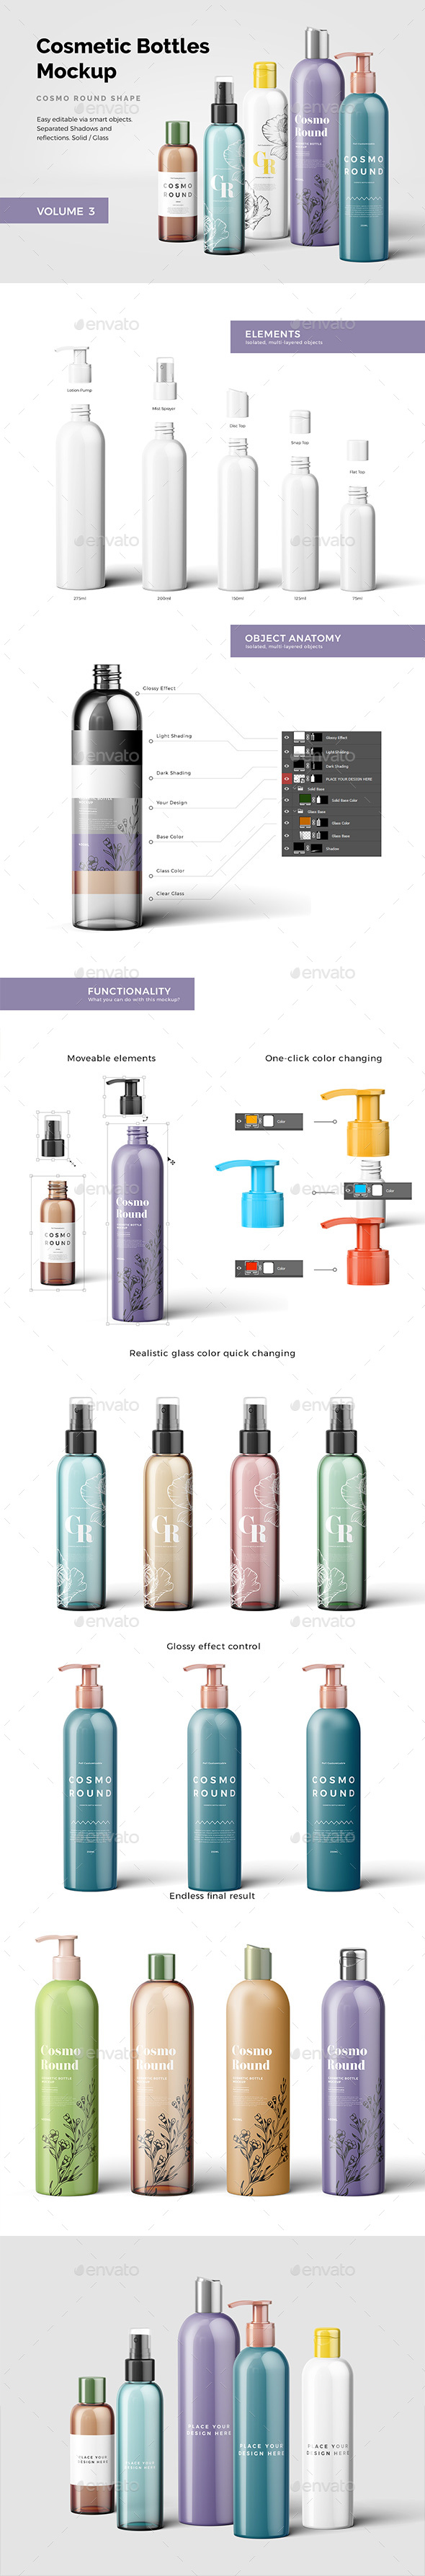 GraphicRiver Cosmetic Bottles Mockup Vol.3 21019439